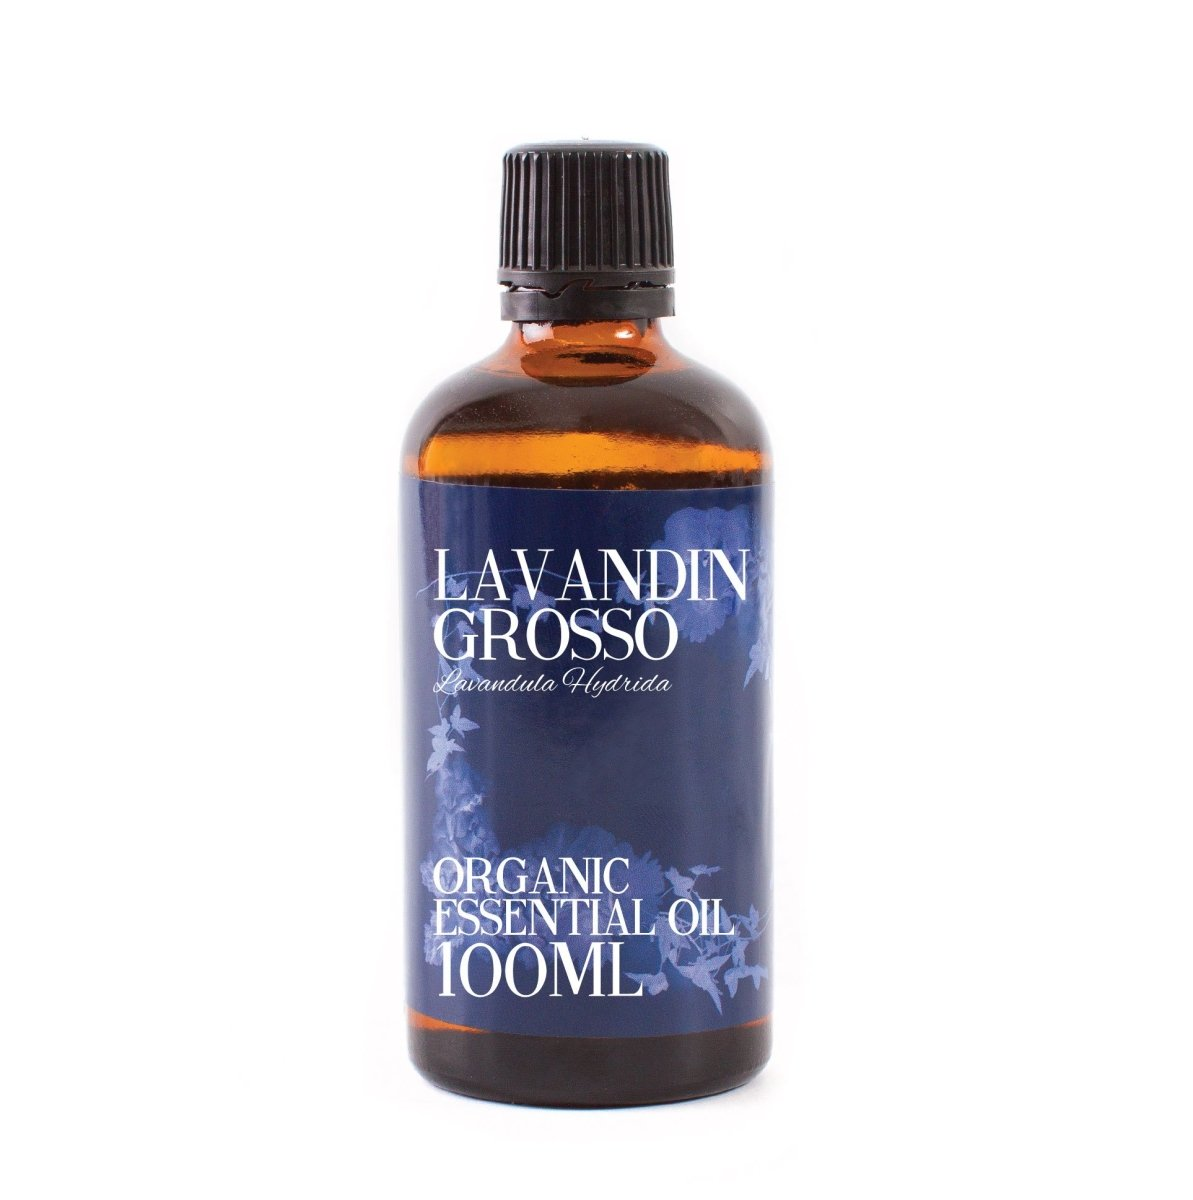 Lavandin Grosso Organic Essential Oil - Mystic Moments UK